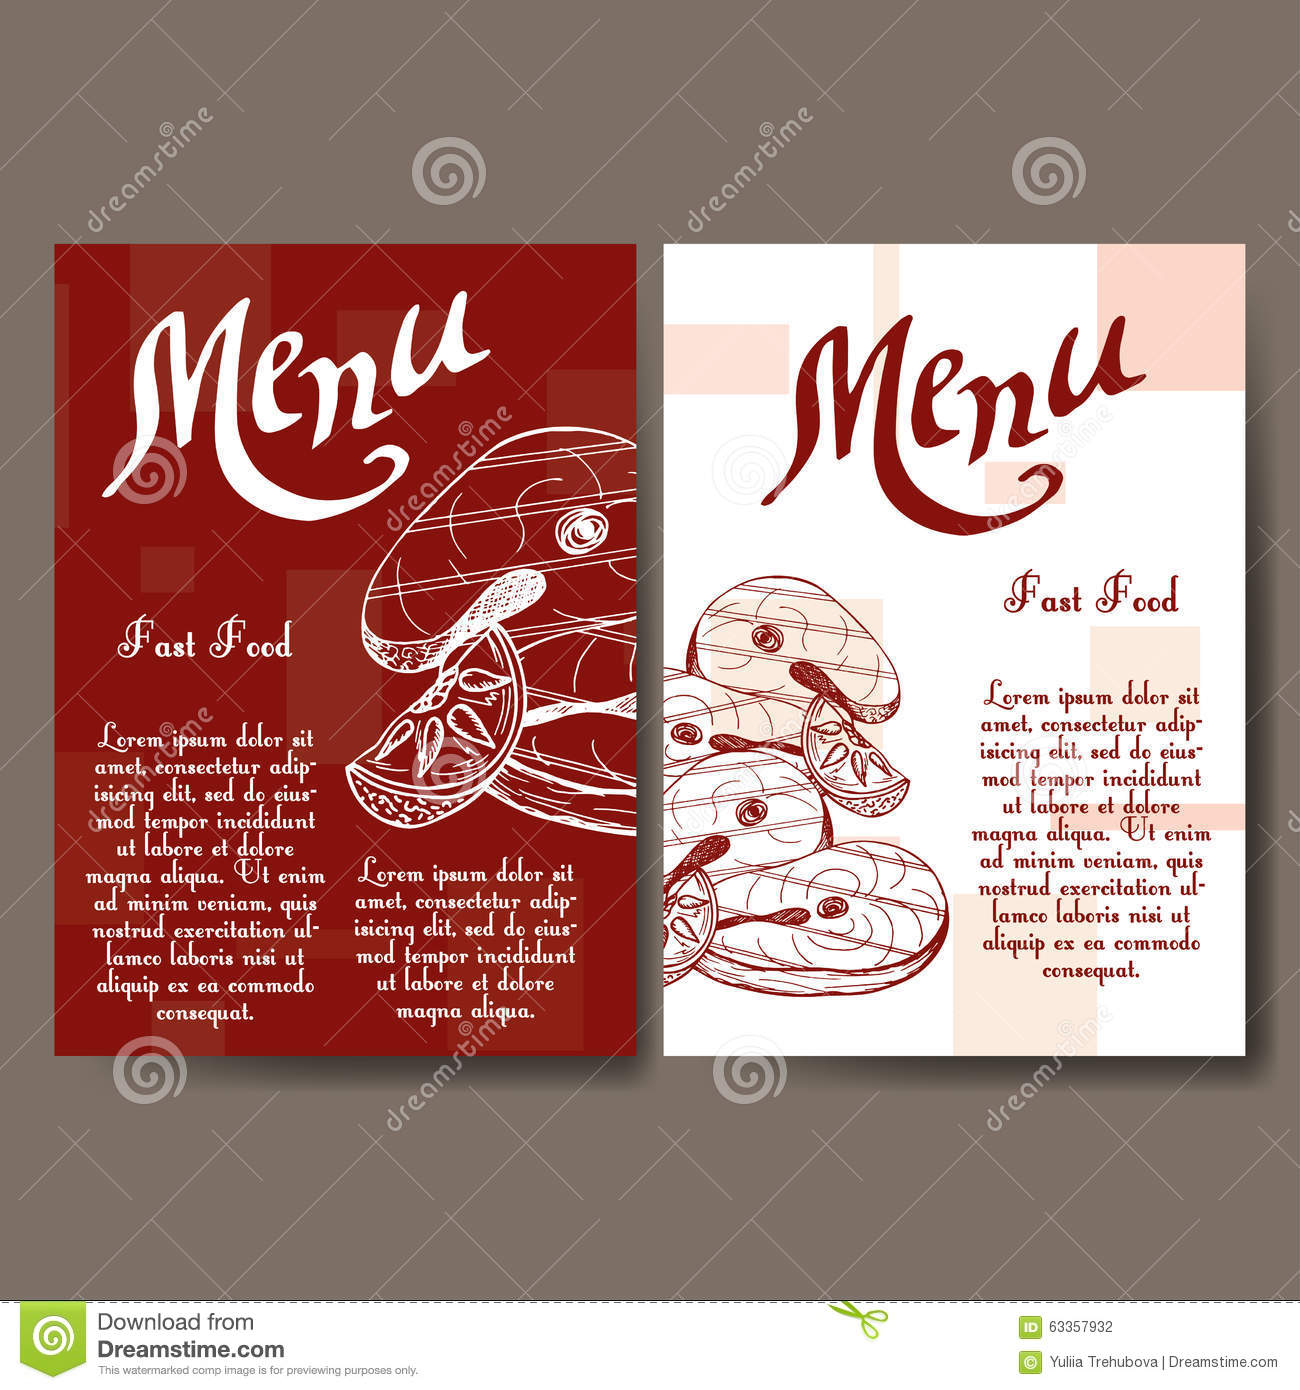 Decoration Fast Food Cafe Menu With Hand Drawn Design Fast Food Restaurant